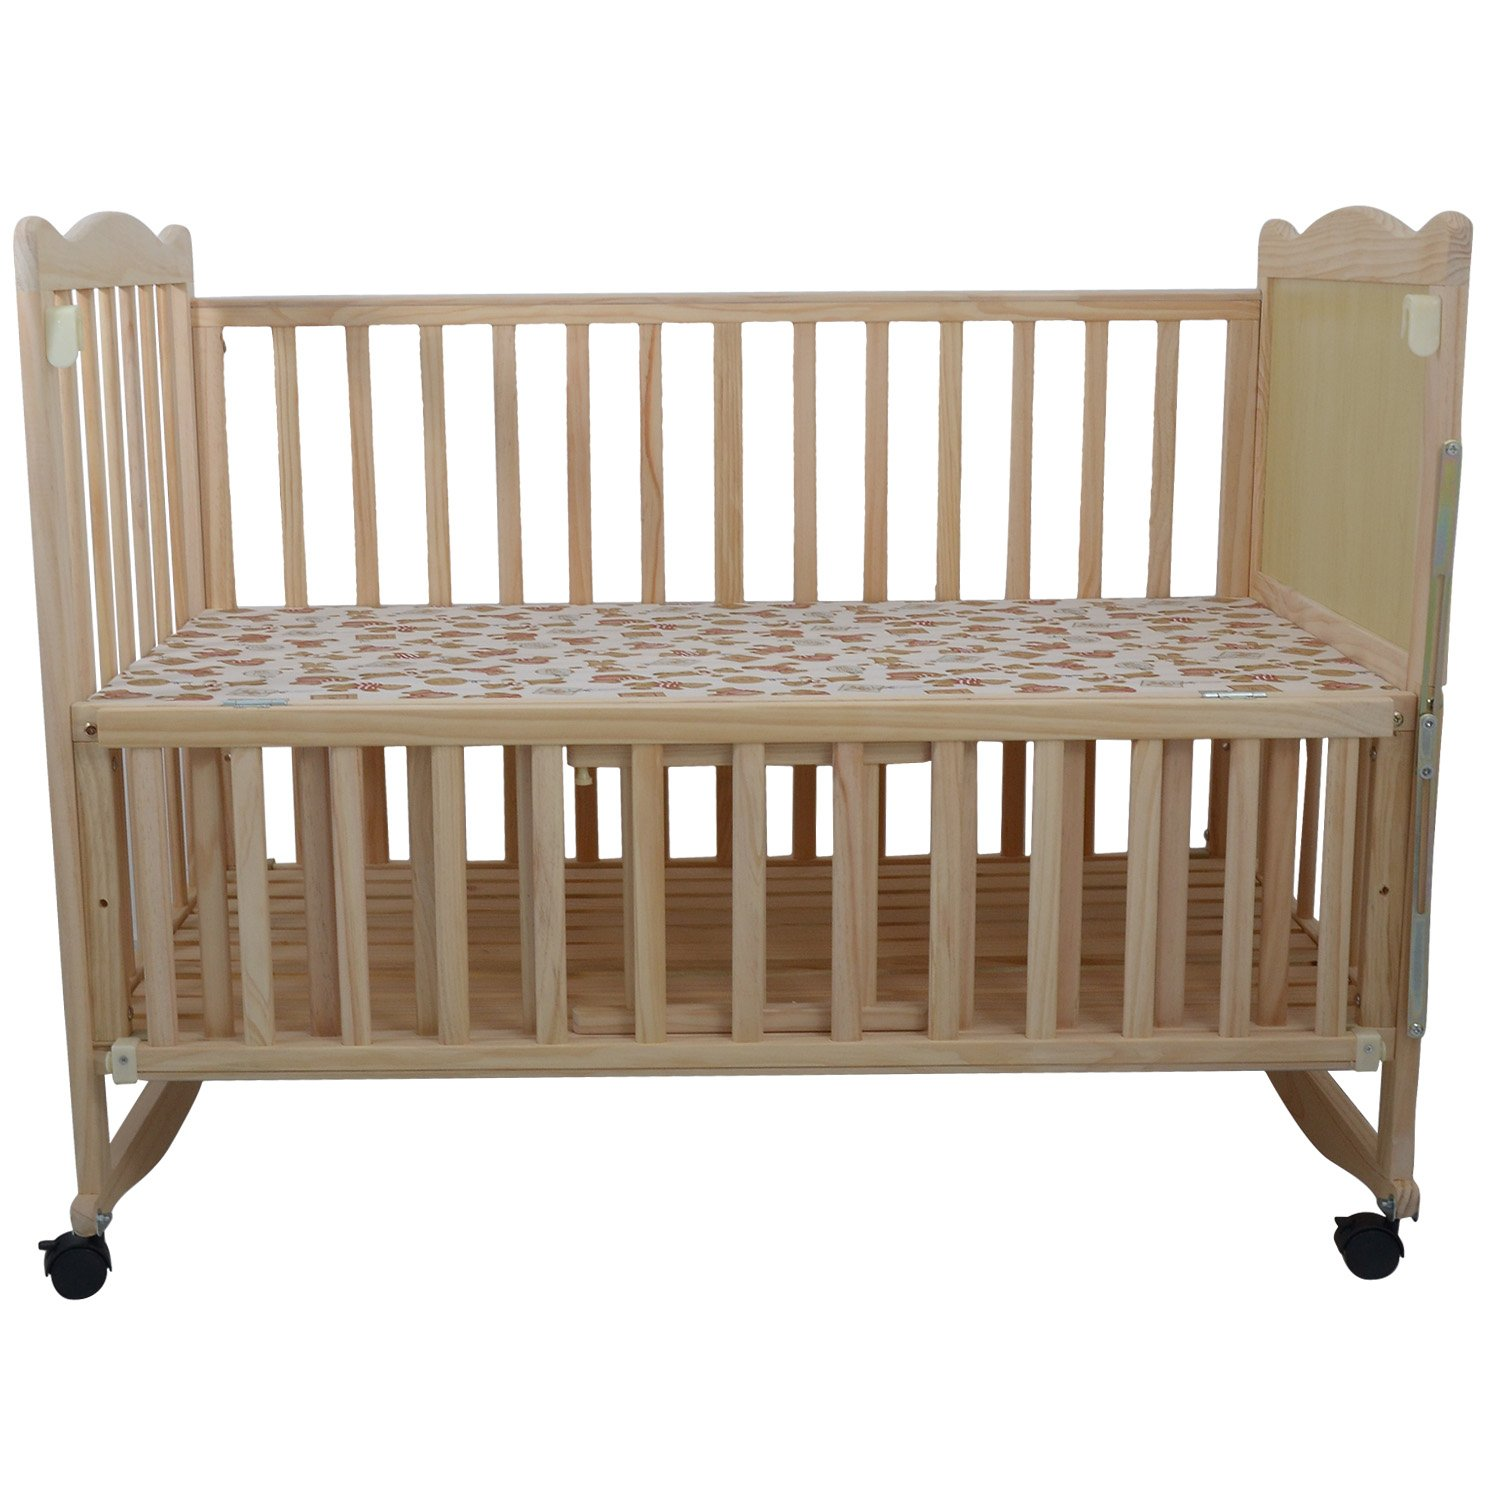 Crib for babies online india - Buy Just Born Baby Cozy Wooden Cot Online At Low Prices In India Amazon In